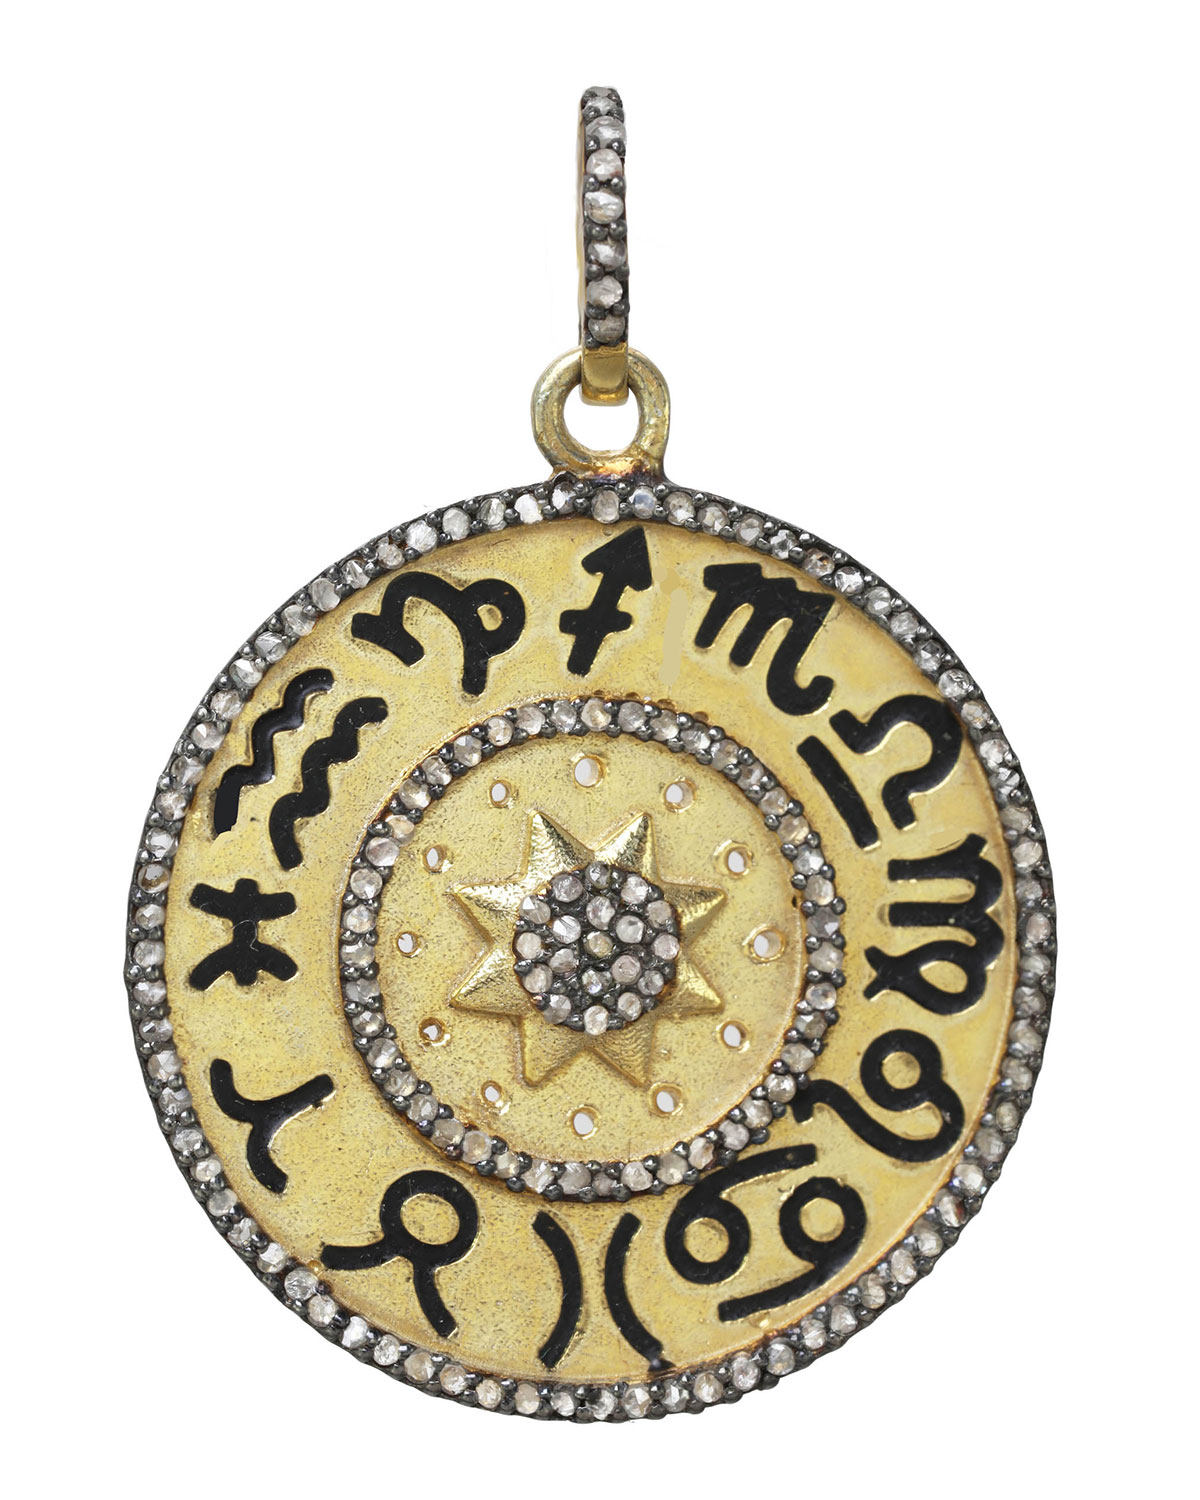 Vermeil and Sterling Silver Astrological Charm